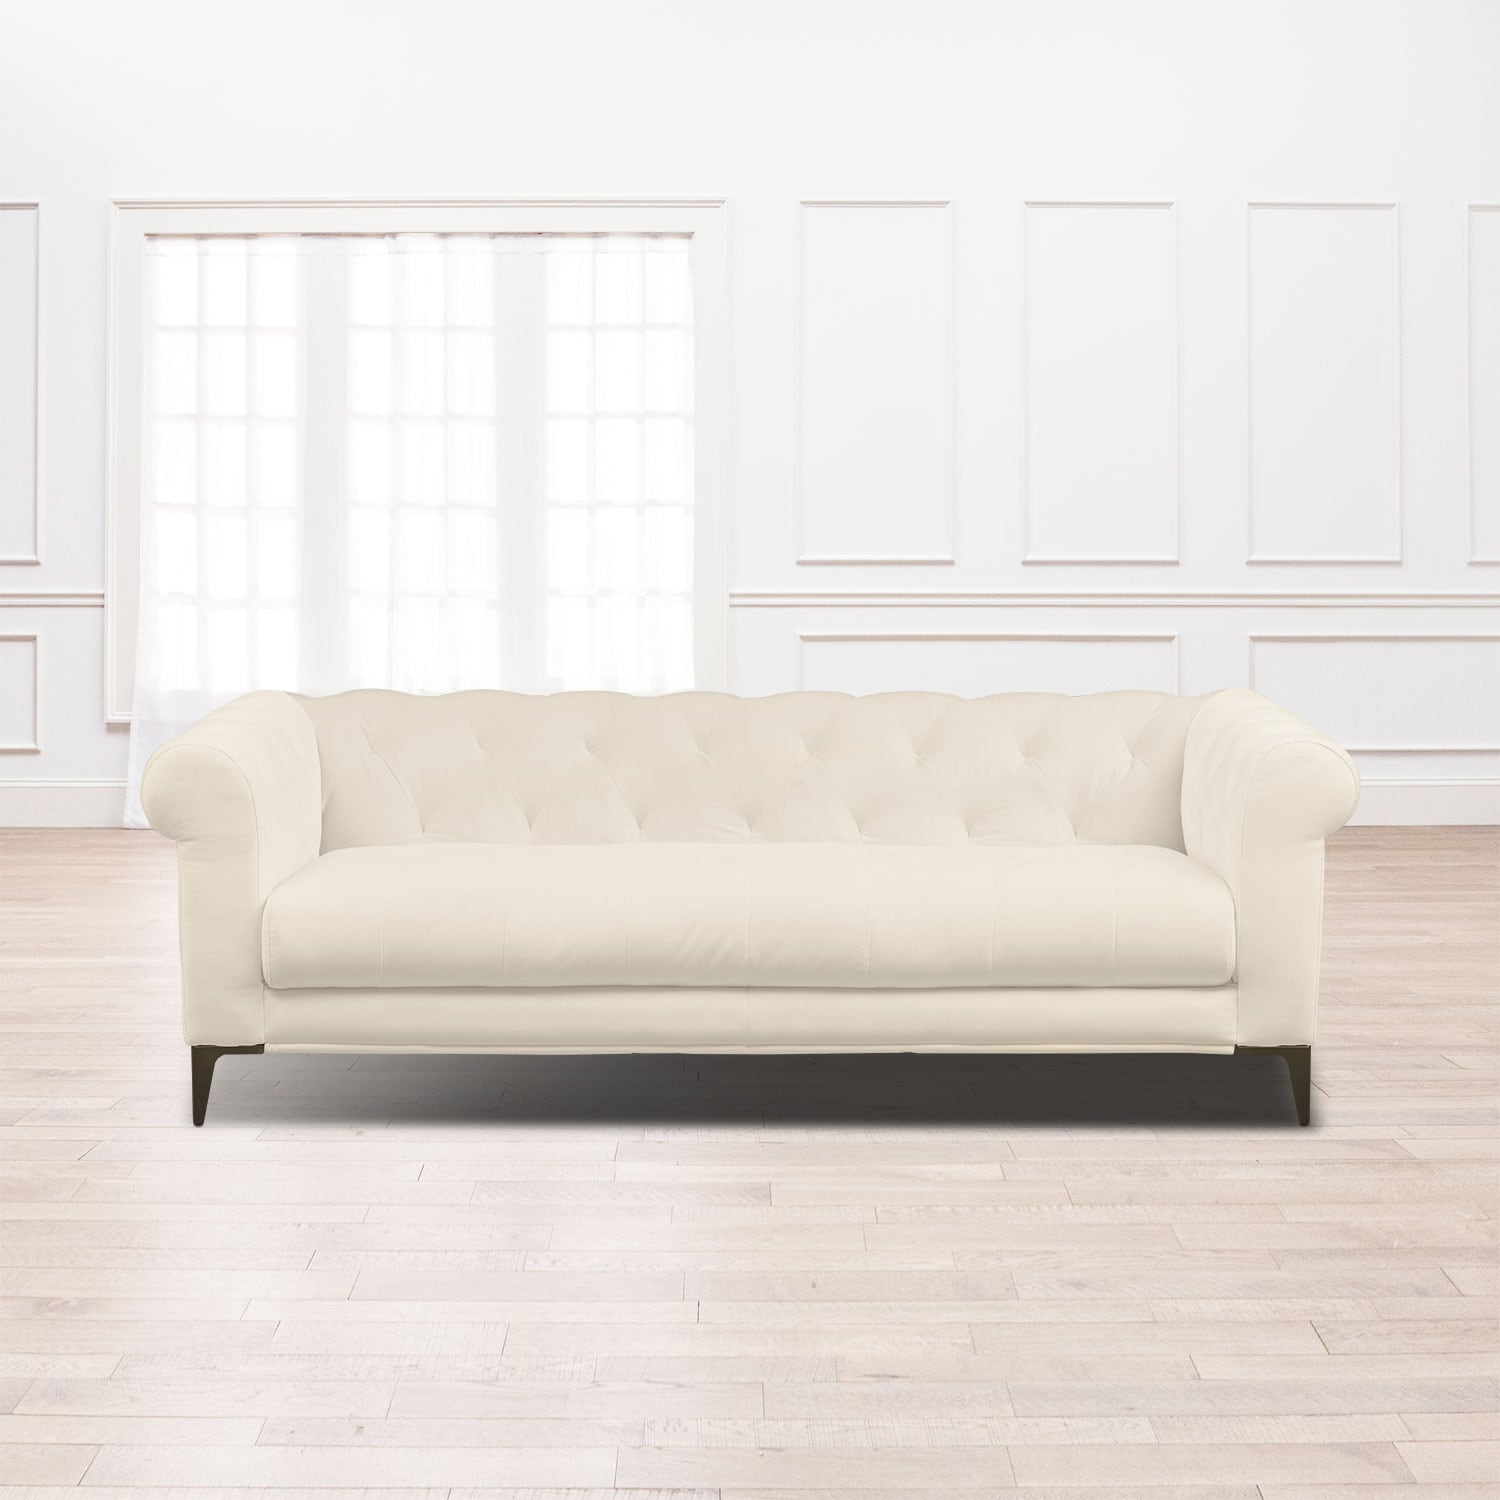 Living Room Furniture Ivory Sofa David Sofa Ivory Value City Furniture And Mattresses